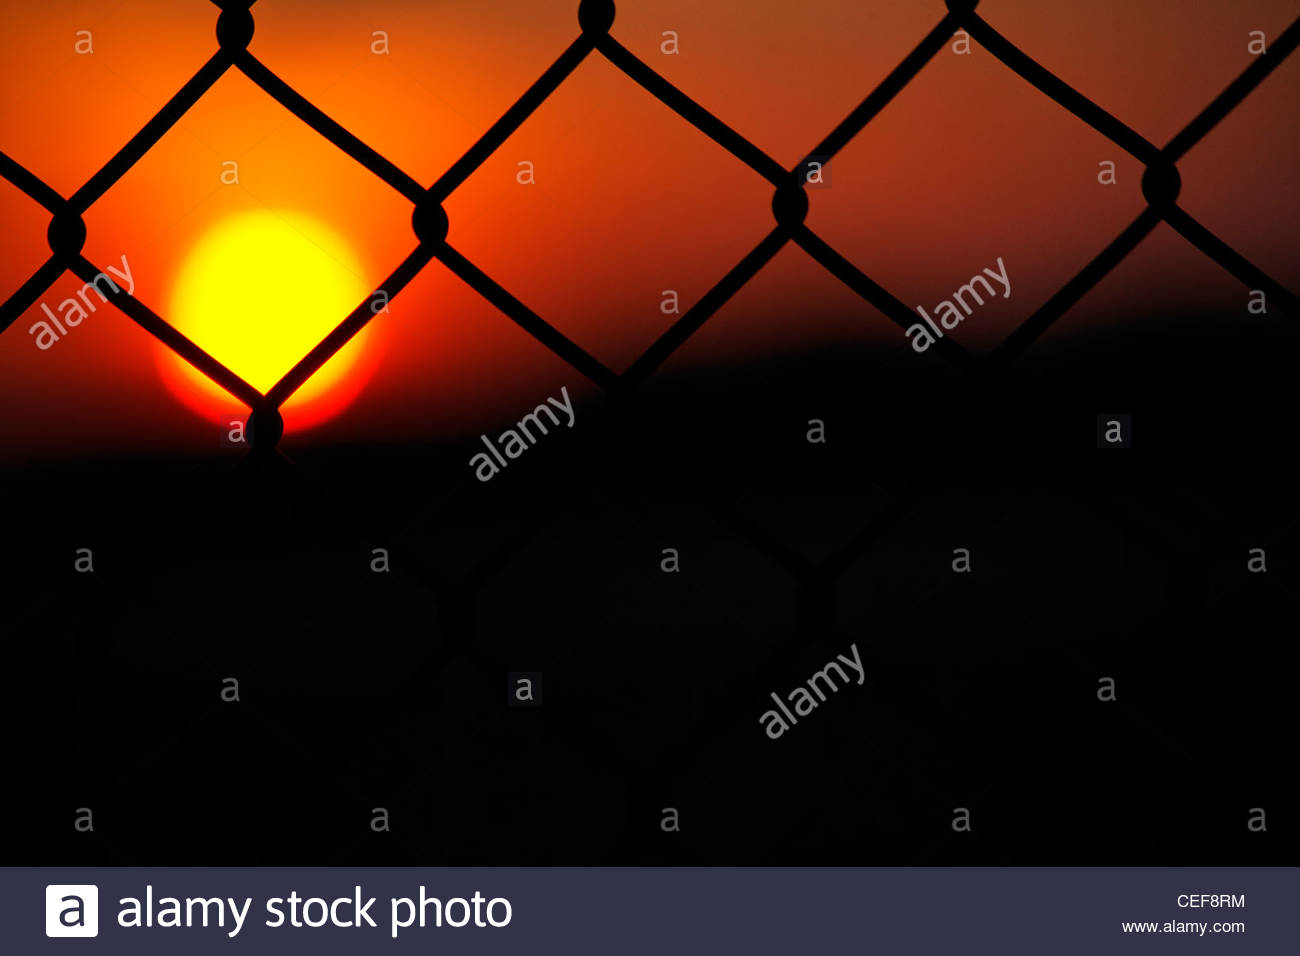 Fence In Silhouette Stock Photos & Fence In Silhouette Stock